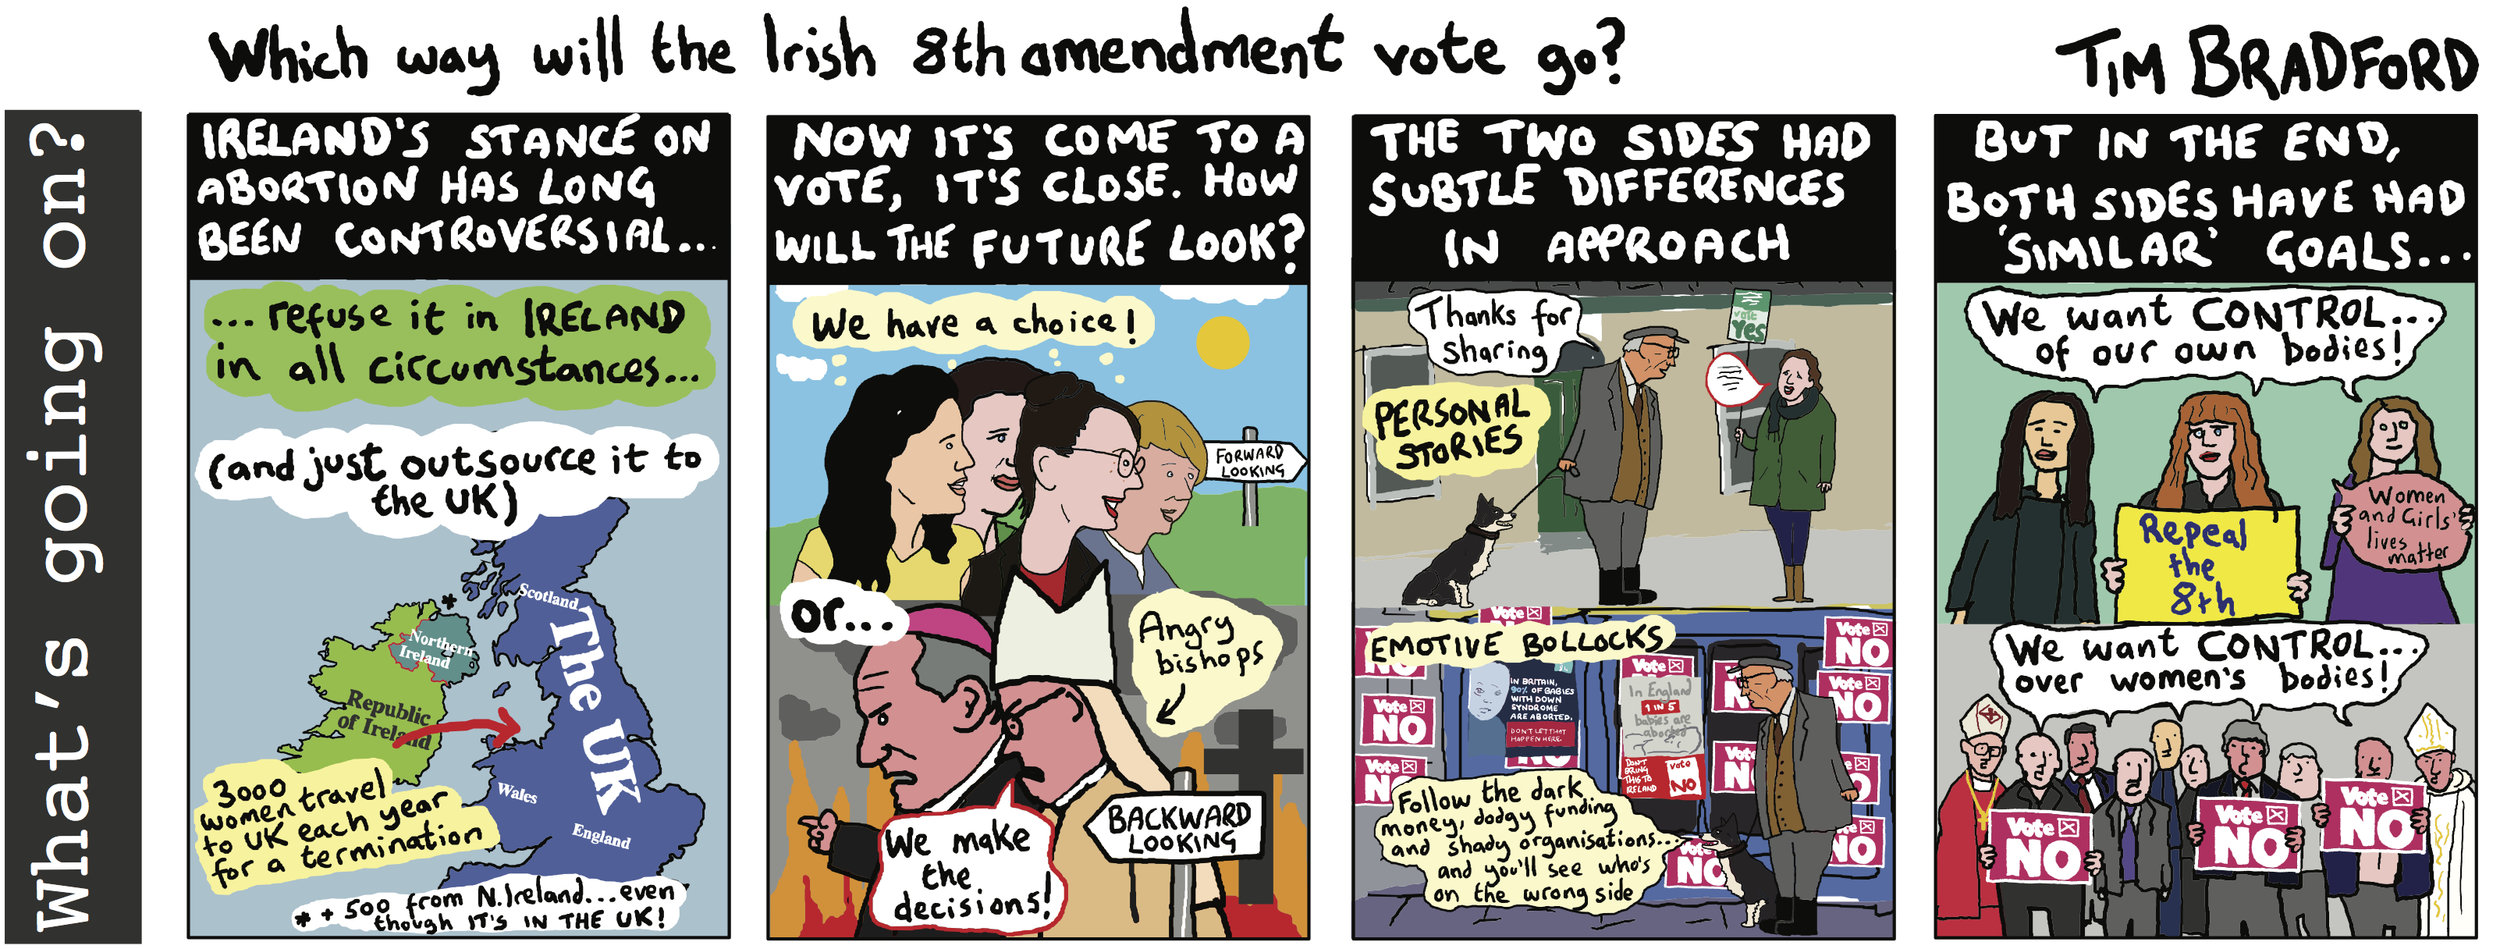 Which way will the Irish 8th amendment vote go? - 22/05/18